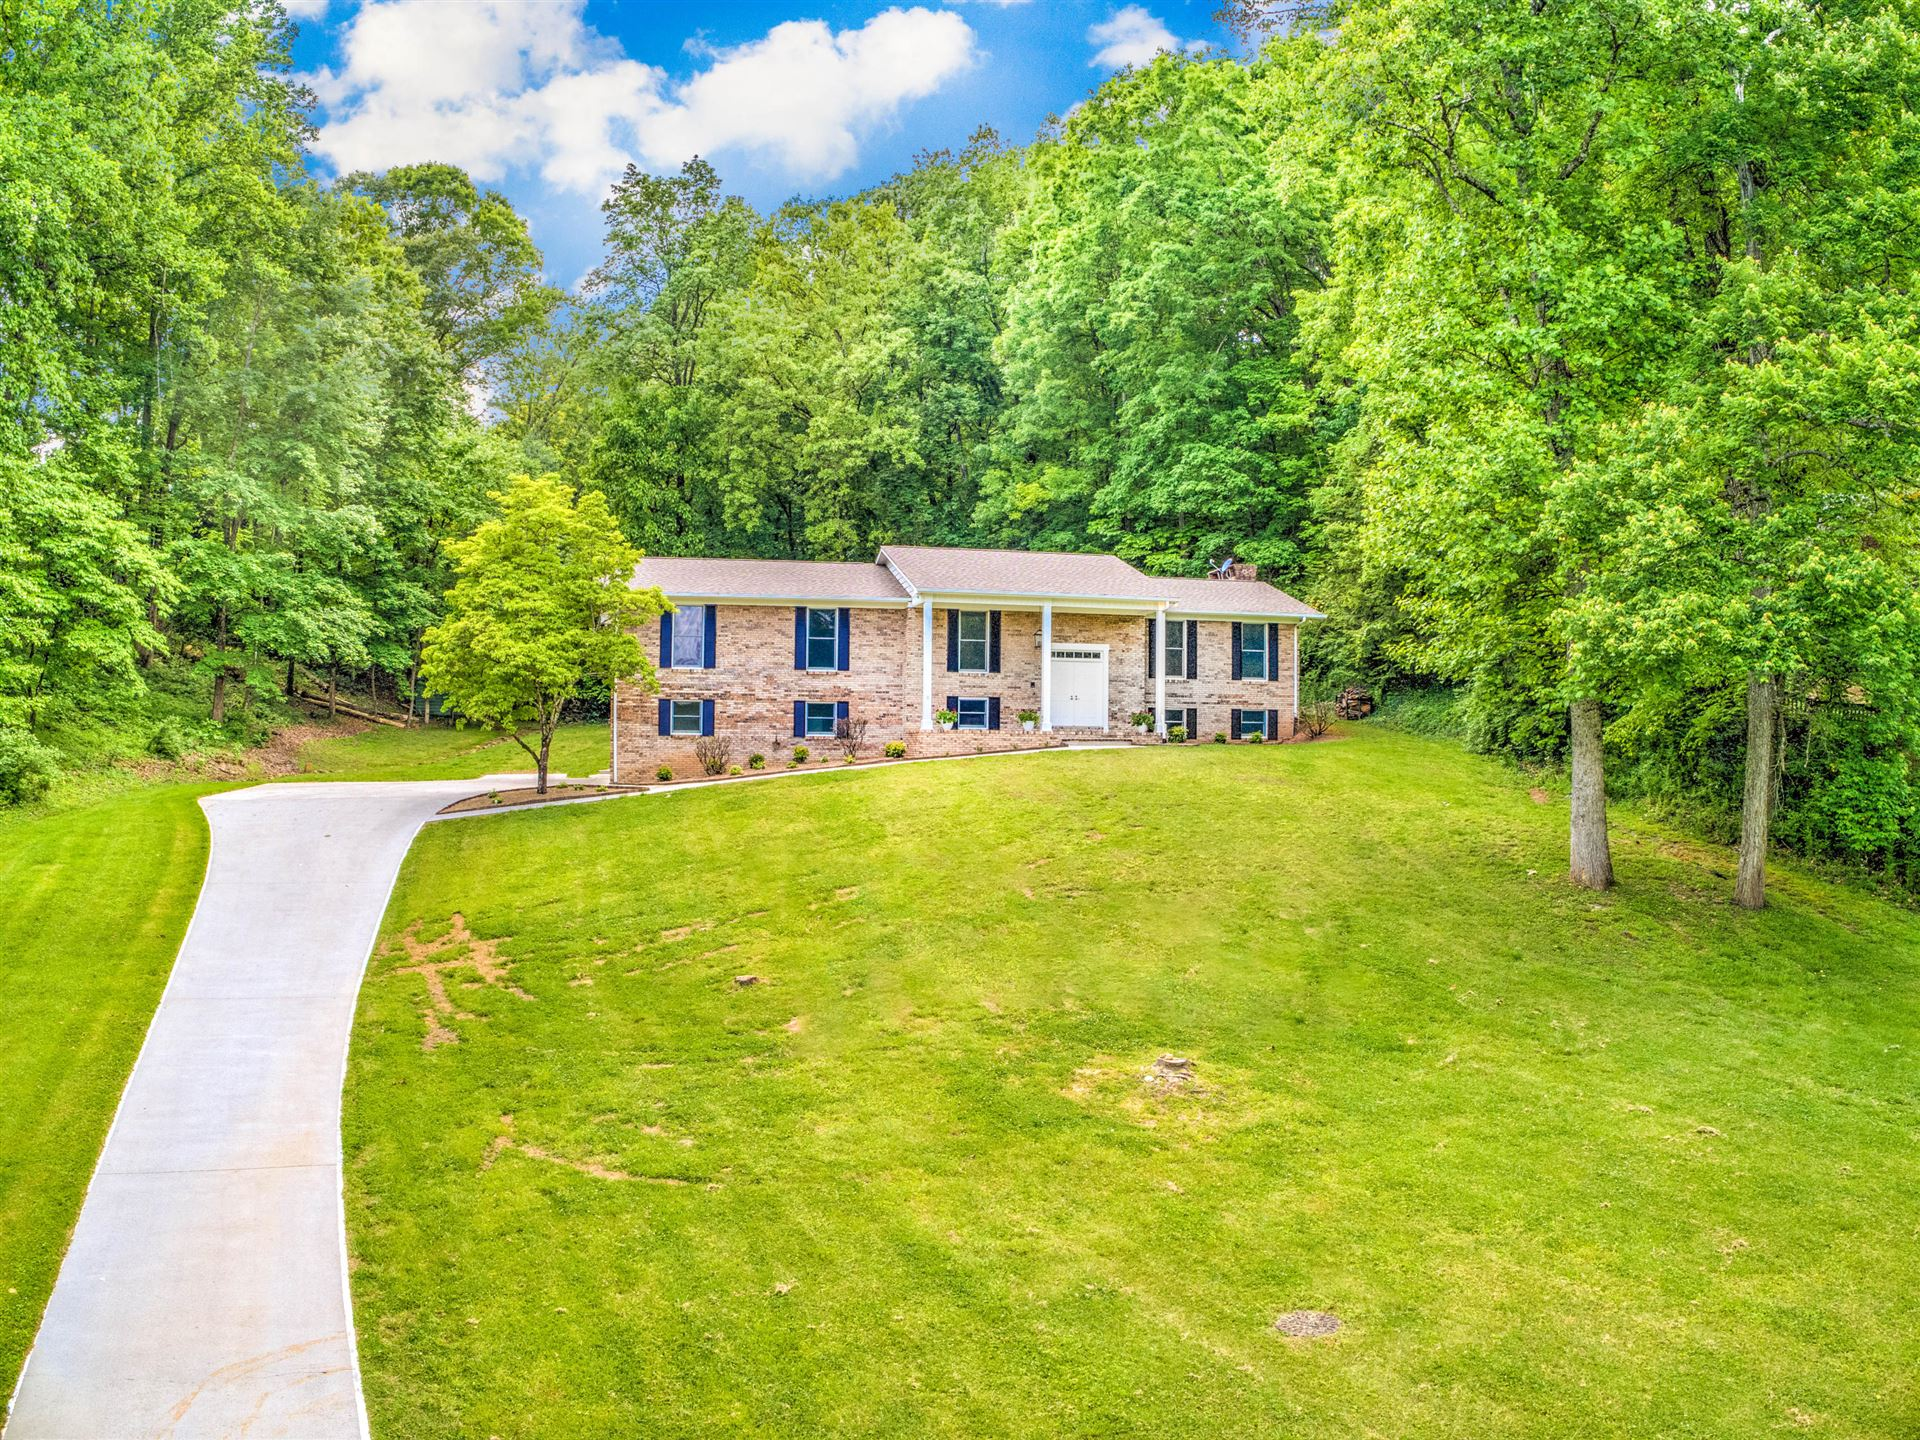 Photo of 133 Amanda Drive Drive, Oak Ridge, TN 37830 (MLS # 1117142)